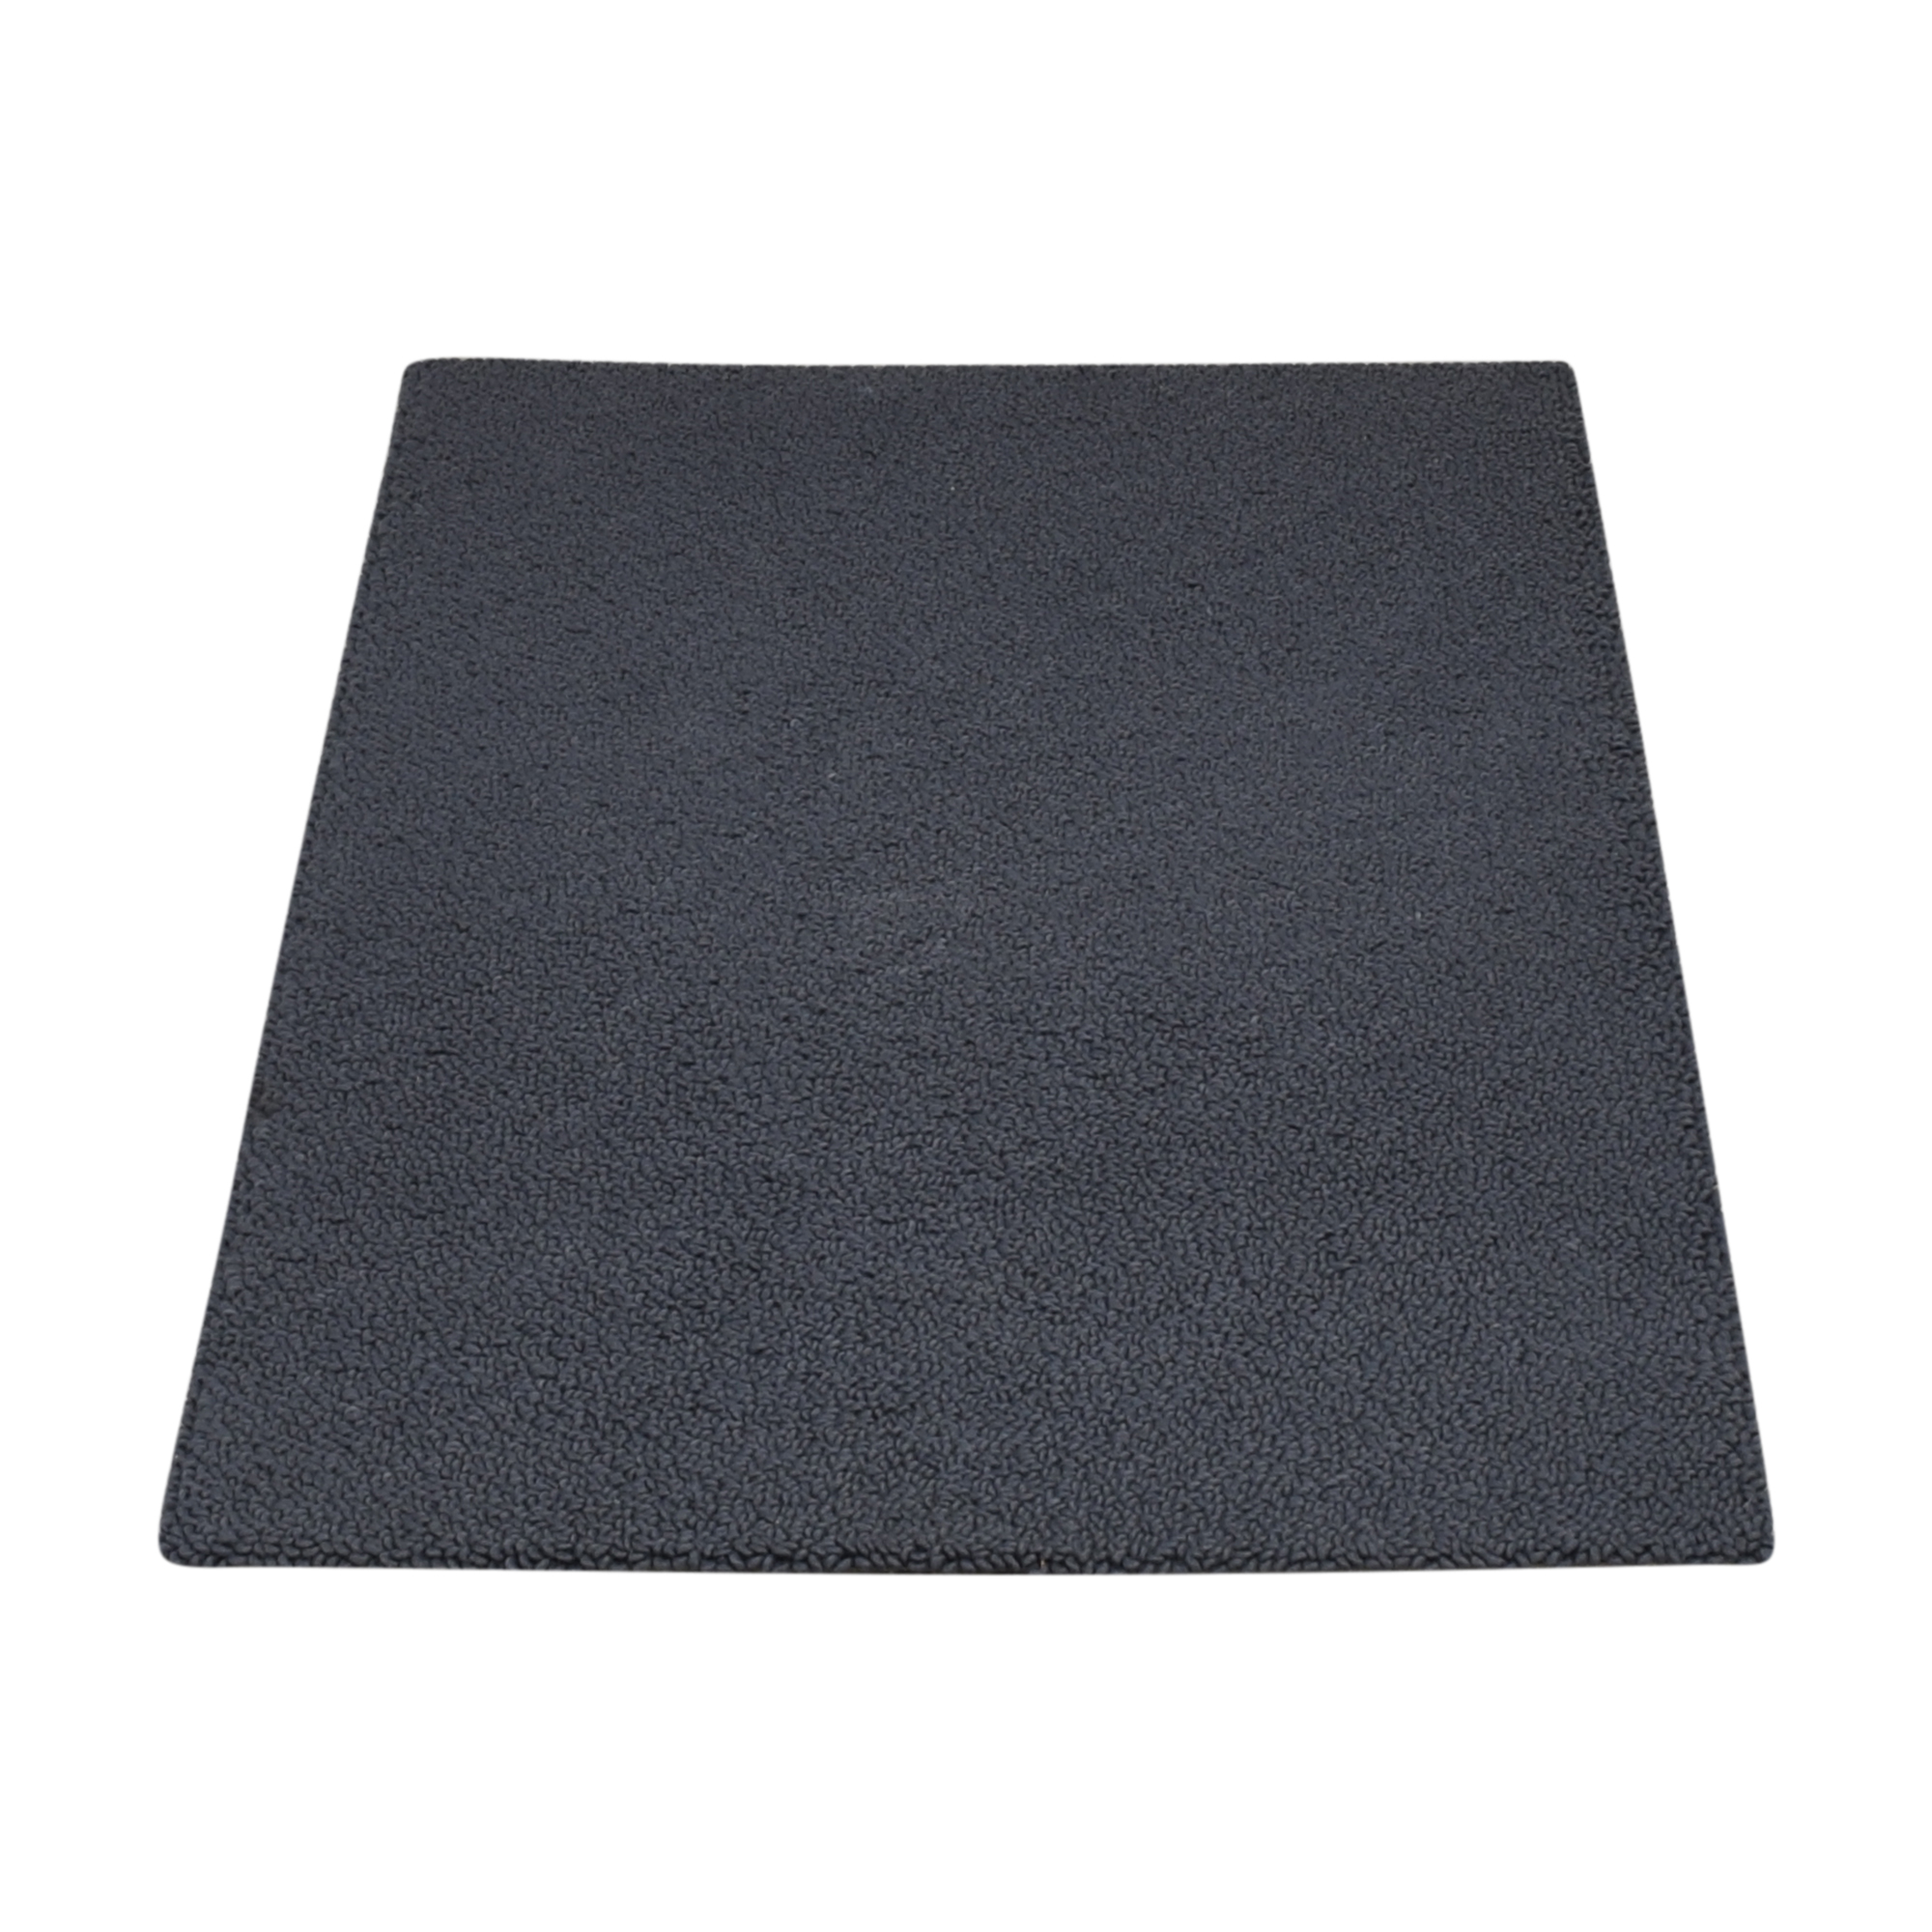 Room & Board Room & Board Arden Loop Rug price